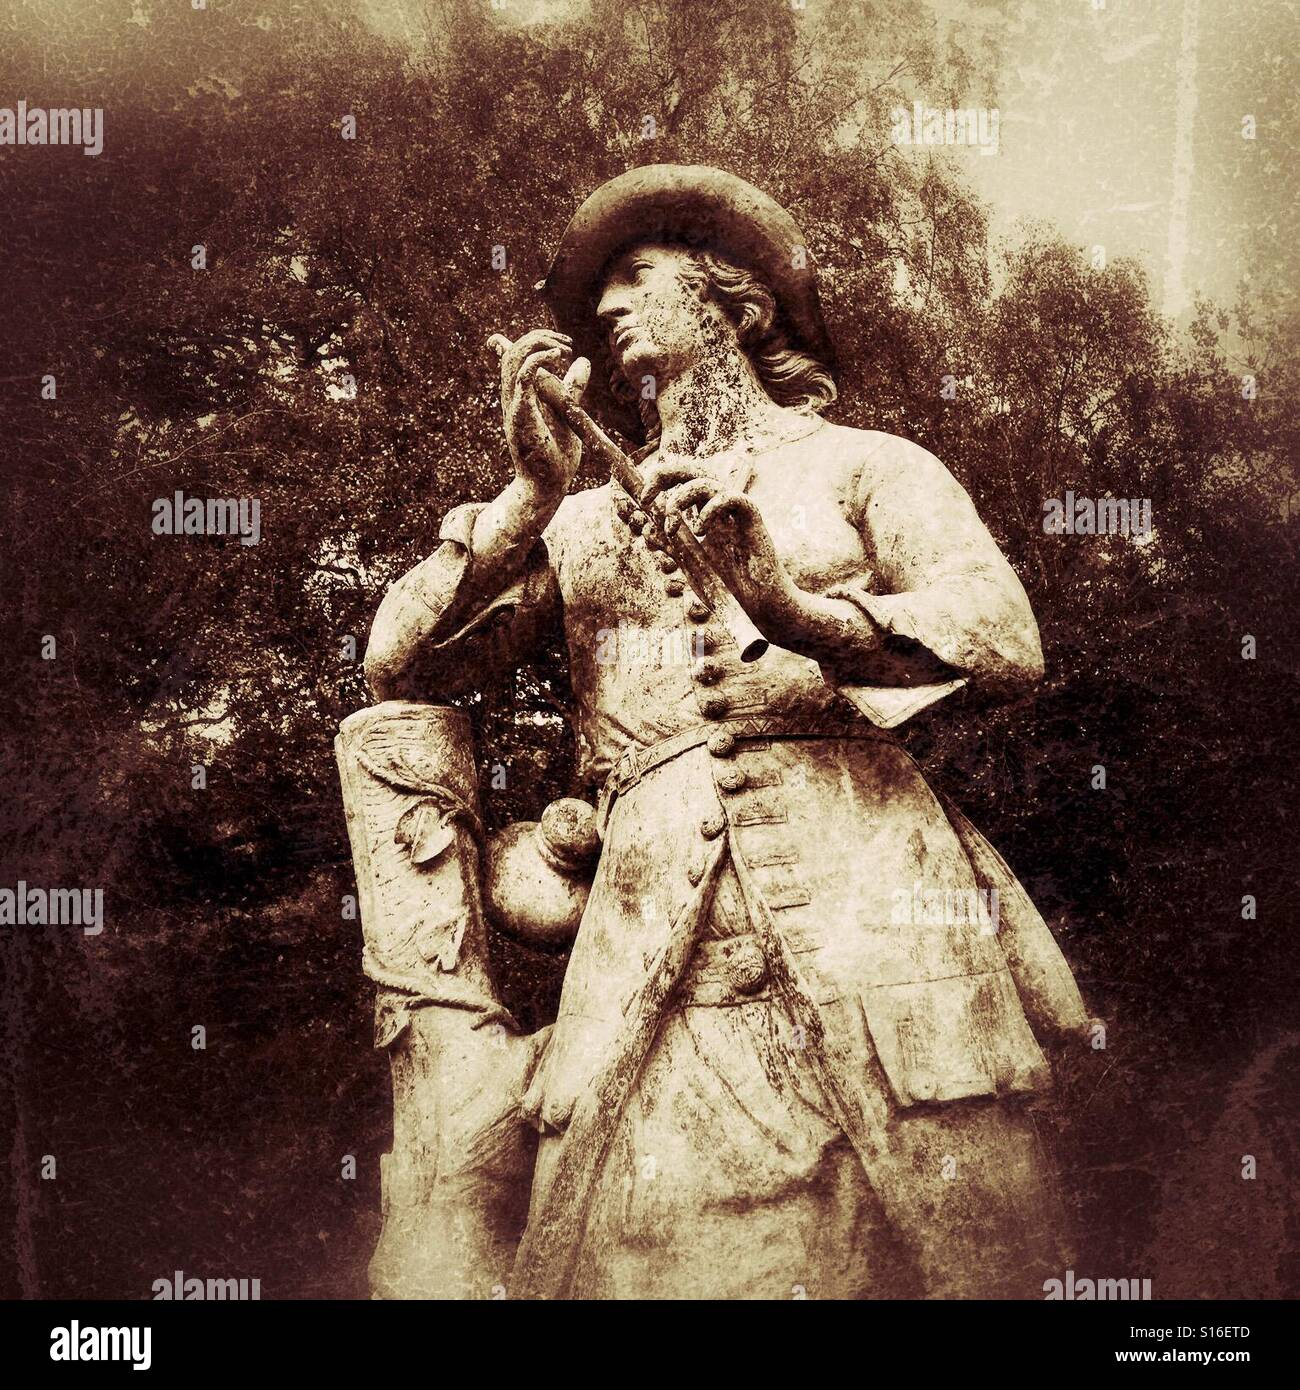 Nostalgic statue of a shepherd boy holding a pipe, in sepia tones - Stock Image